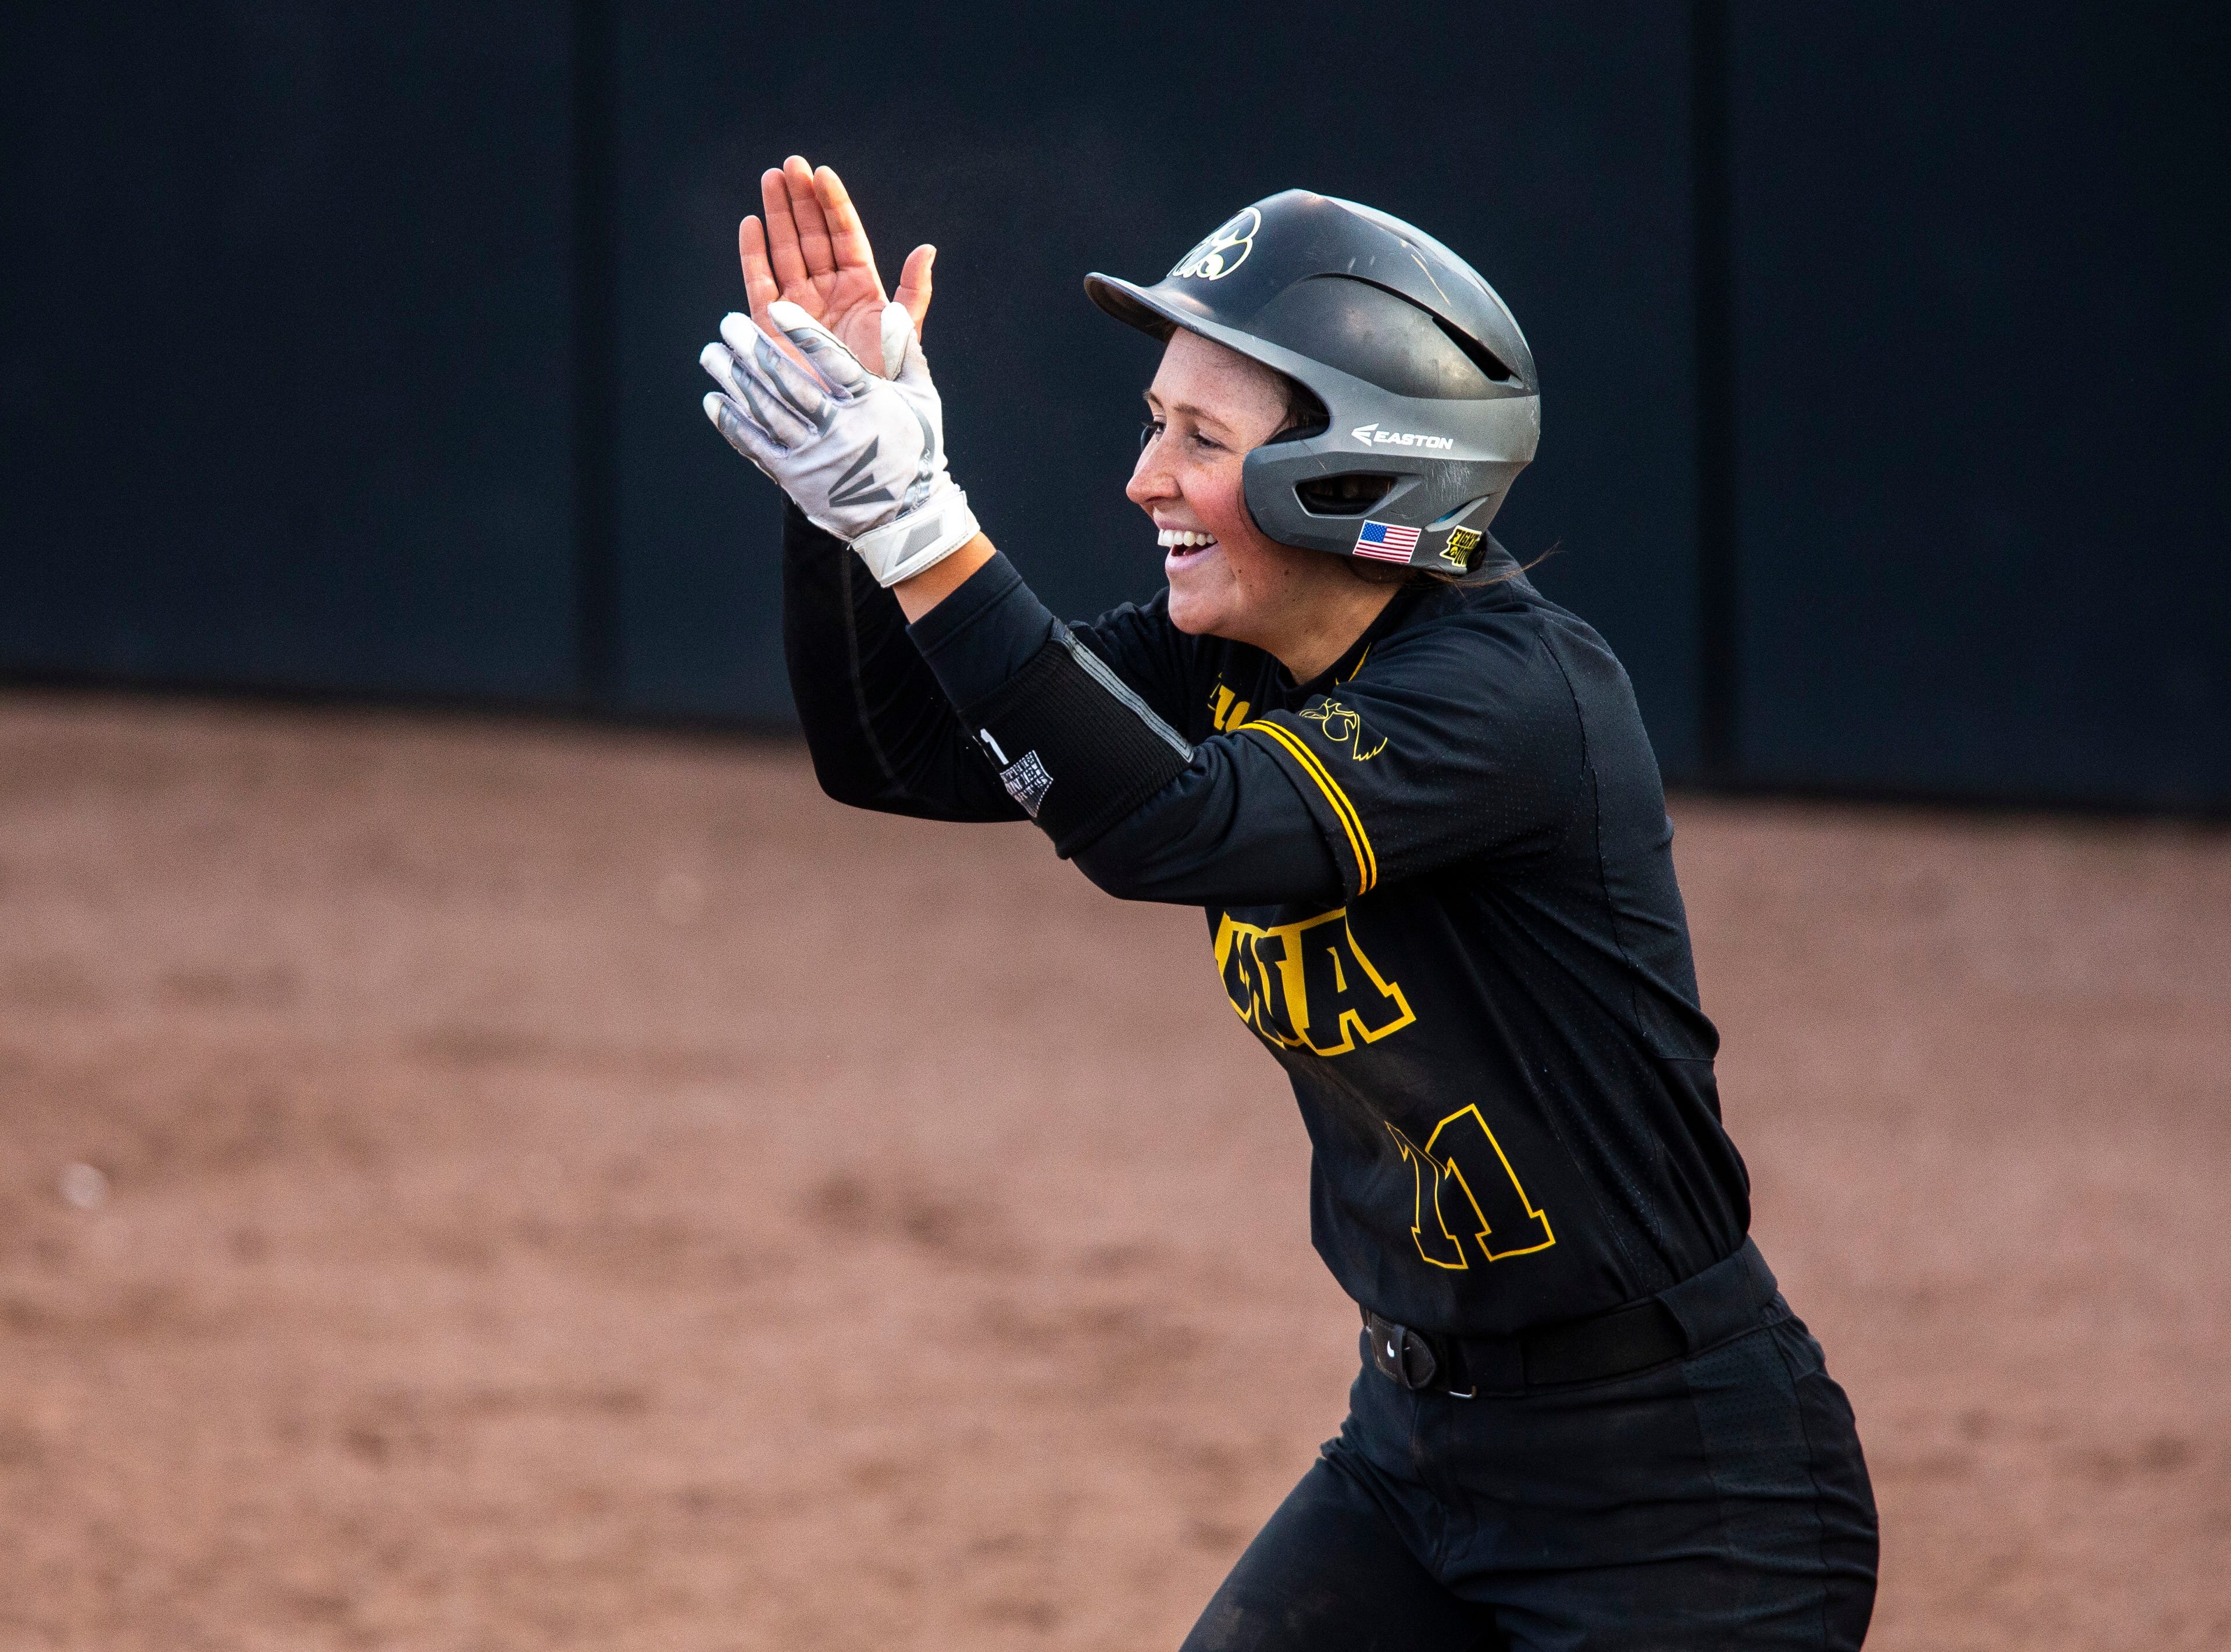 Iowa pitcher Mallory Killian (11) celebrates after scoring a run during a NCAA Big Ten Conference softball game on Saturday, April 13, 2019, at Bob Pearl Field in Coralville, Iowa. The Hawkeyes defeated Illinois, 4-3, for the first home win of the season.